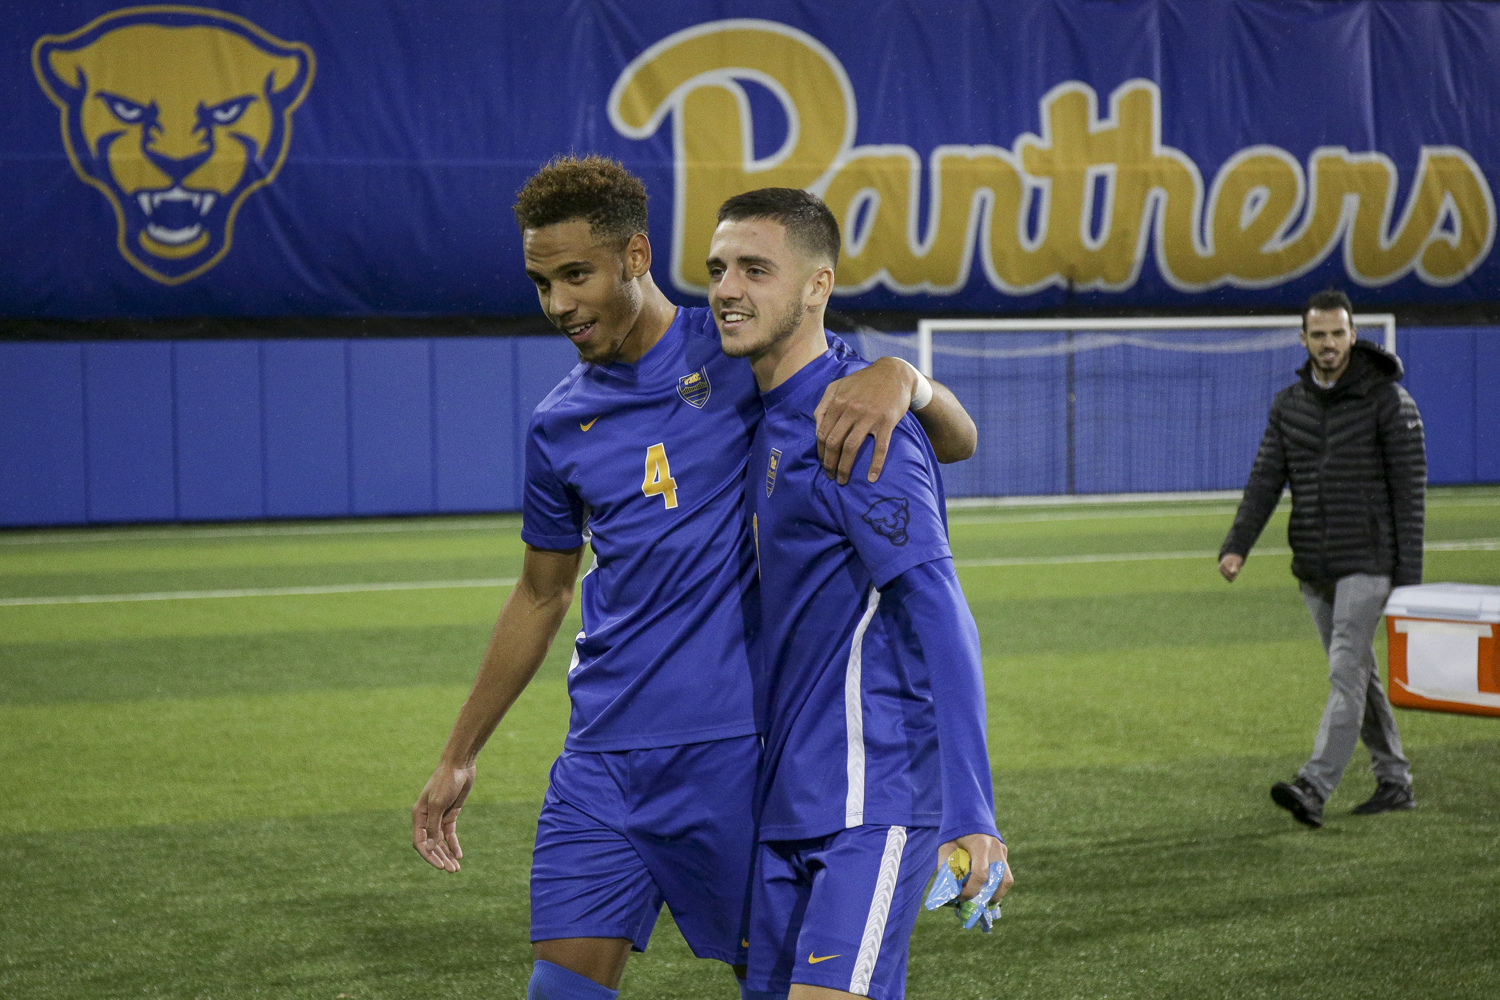 Junior Bryce Washington (4) and first-year Valentin Noel (8) walk off the field together after Pitt's 2-0 victory over Lehigh.